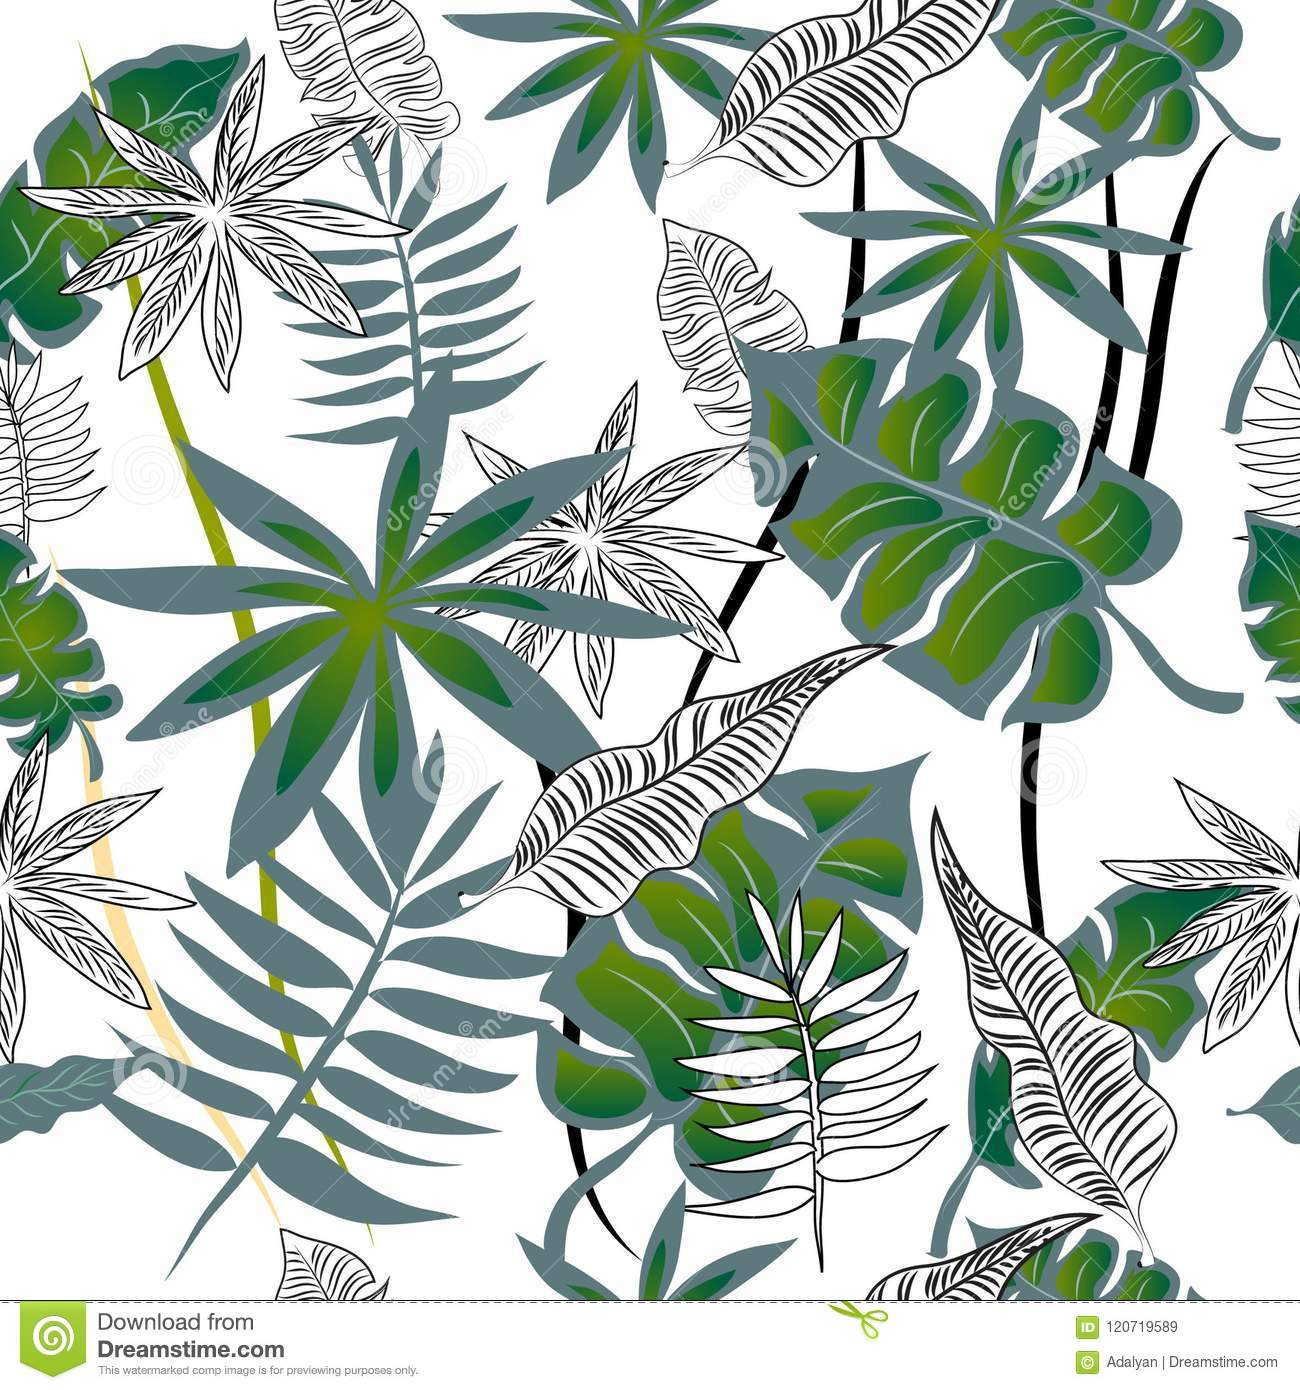 Seamless Pattern For Wallpaper Vector Banner With Tropical Leaves Stock Illustration Illustration Of Tropical Banners 120719589 Leaves,tropical vector plant and more resources at freedesignfile.com. https www dreamstime com seamless pattern wallpaper vector banner tropical leaves easy design image120719589